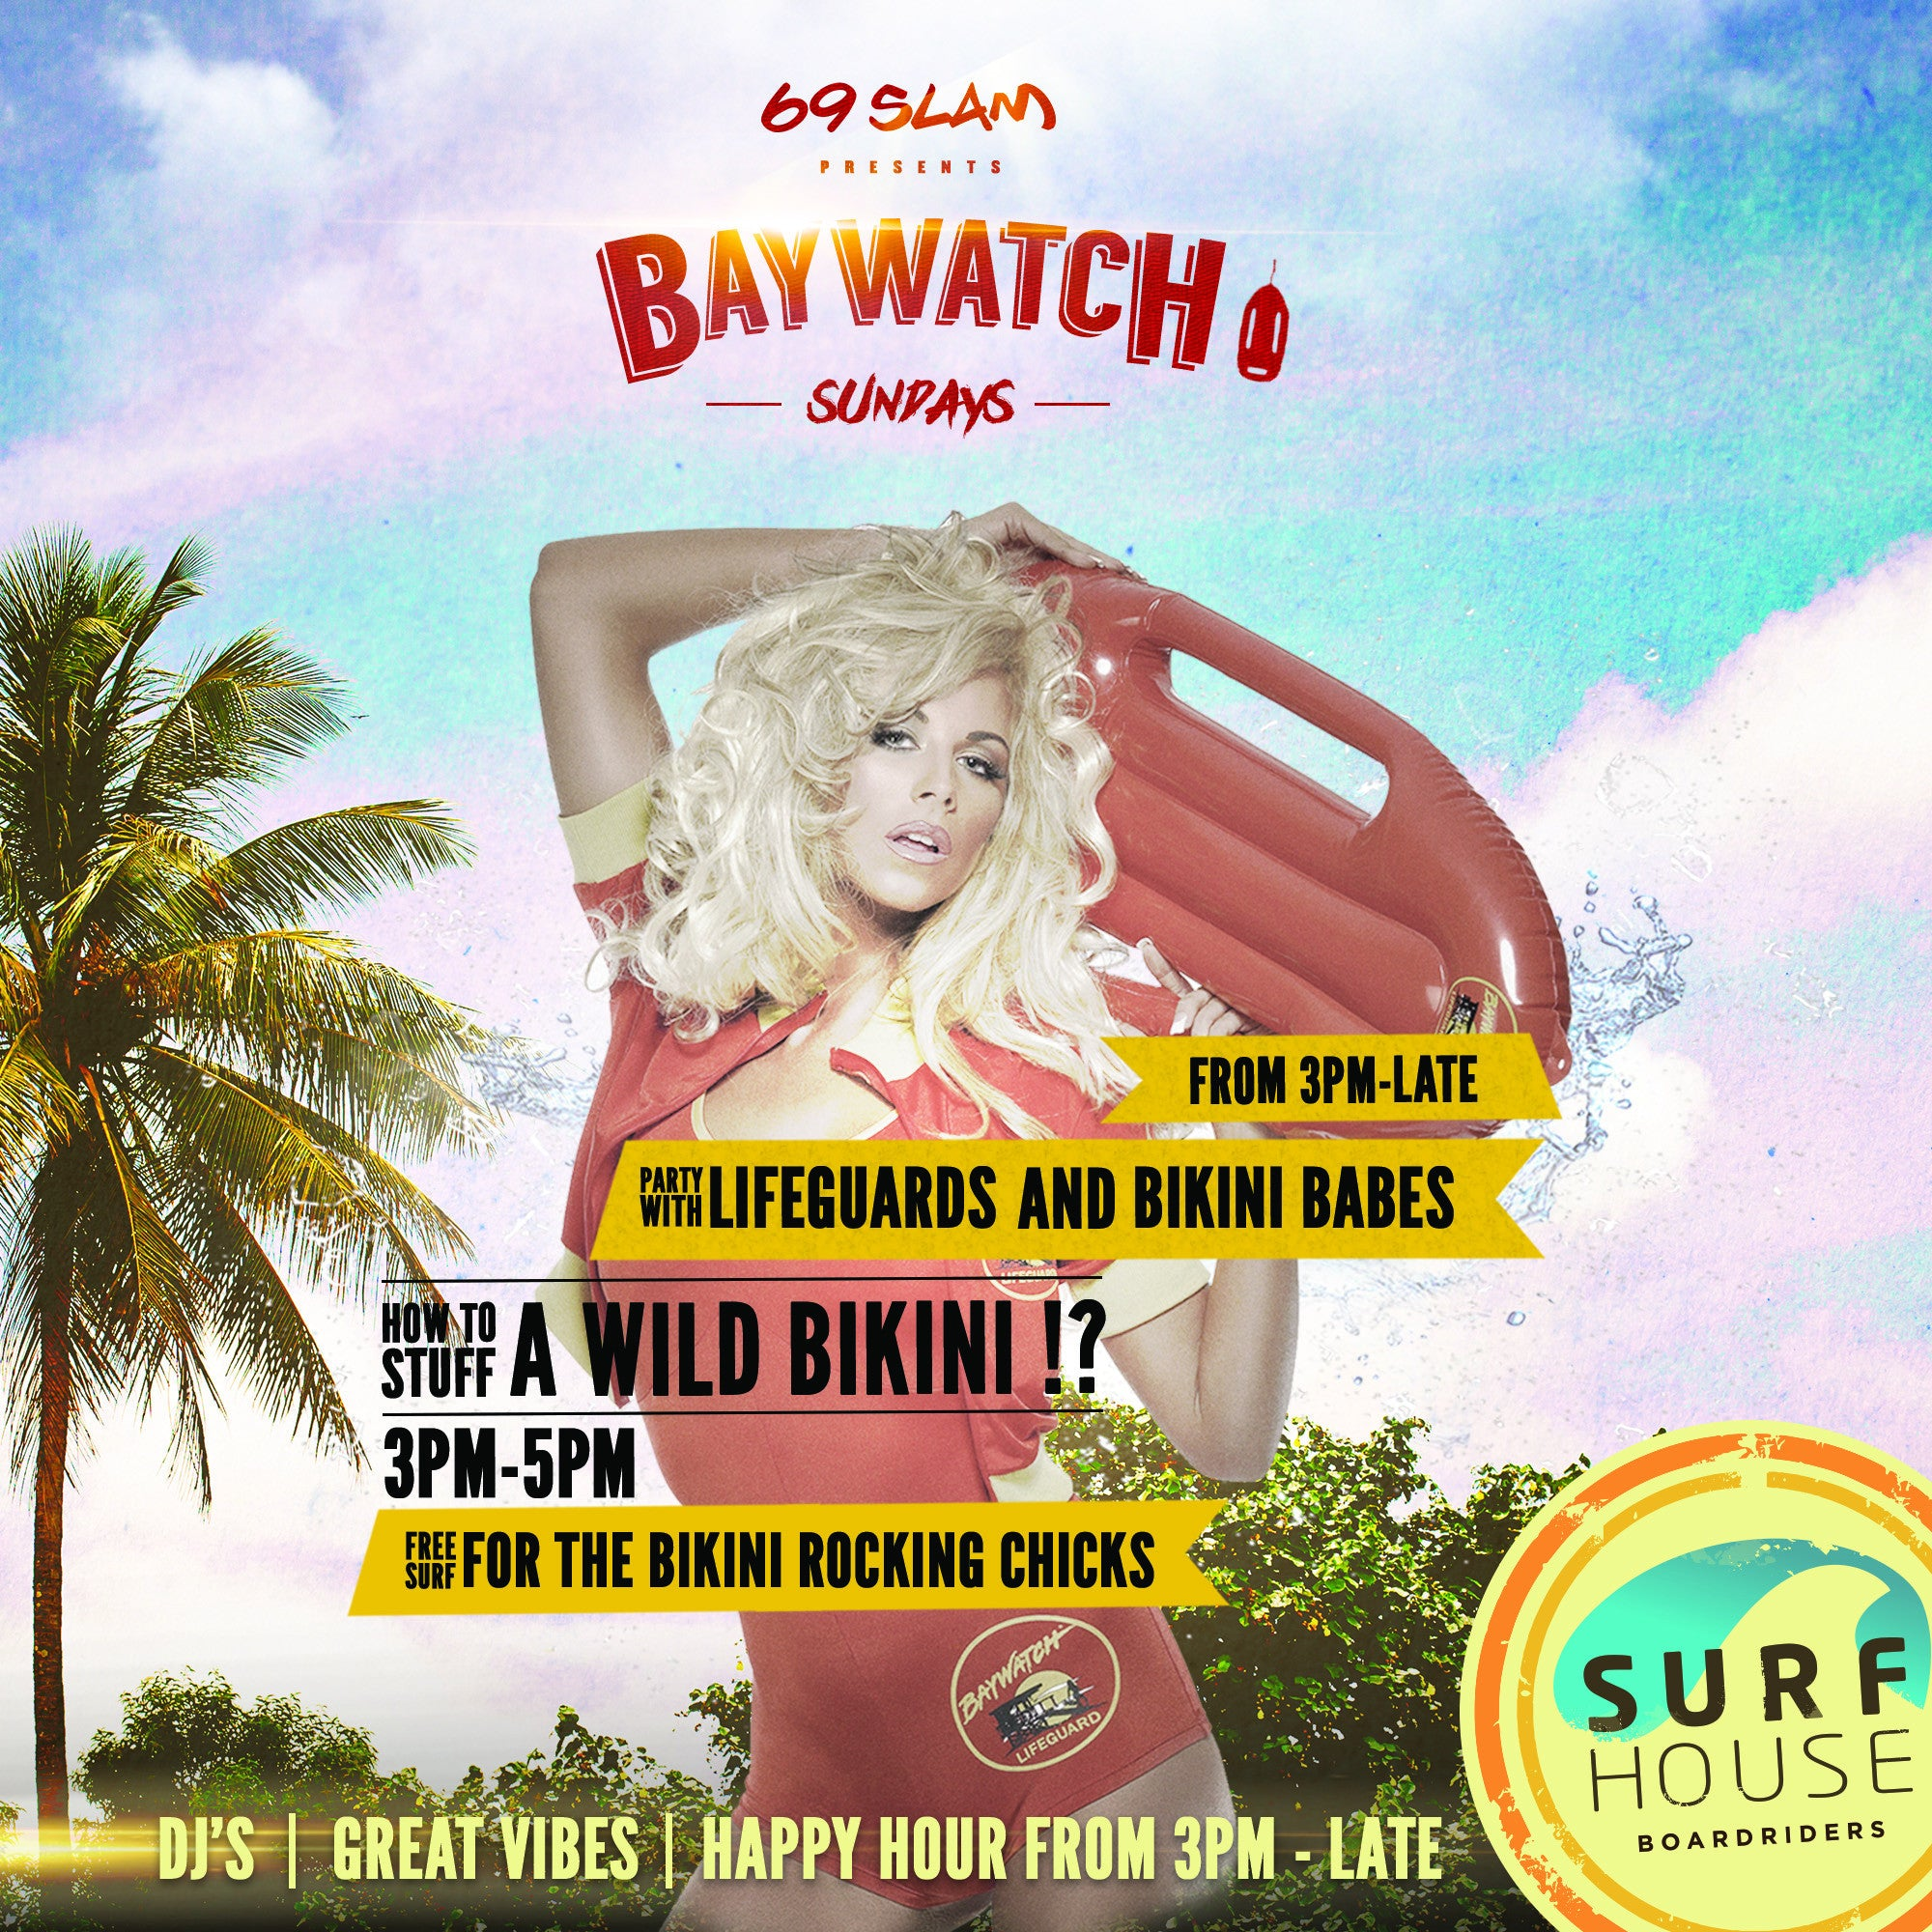 BAYWATCH SUNDAYS - FREE SURF FOR LADIES 3:00-5:00 PM